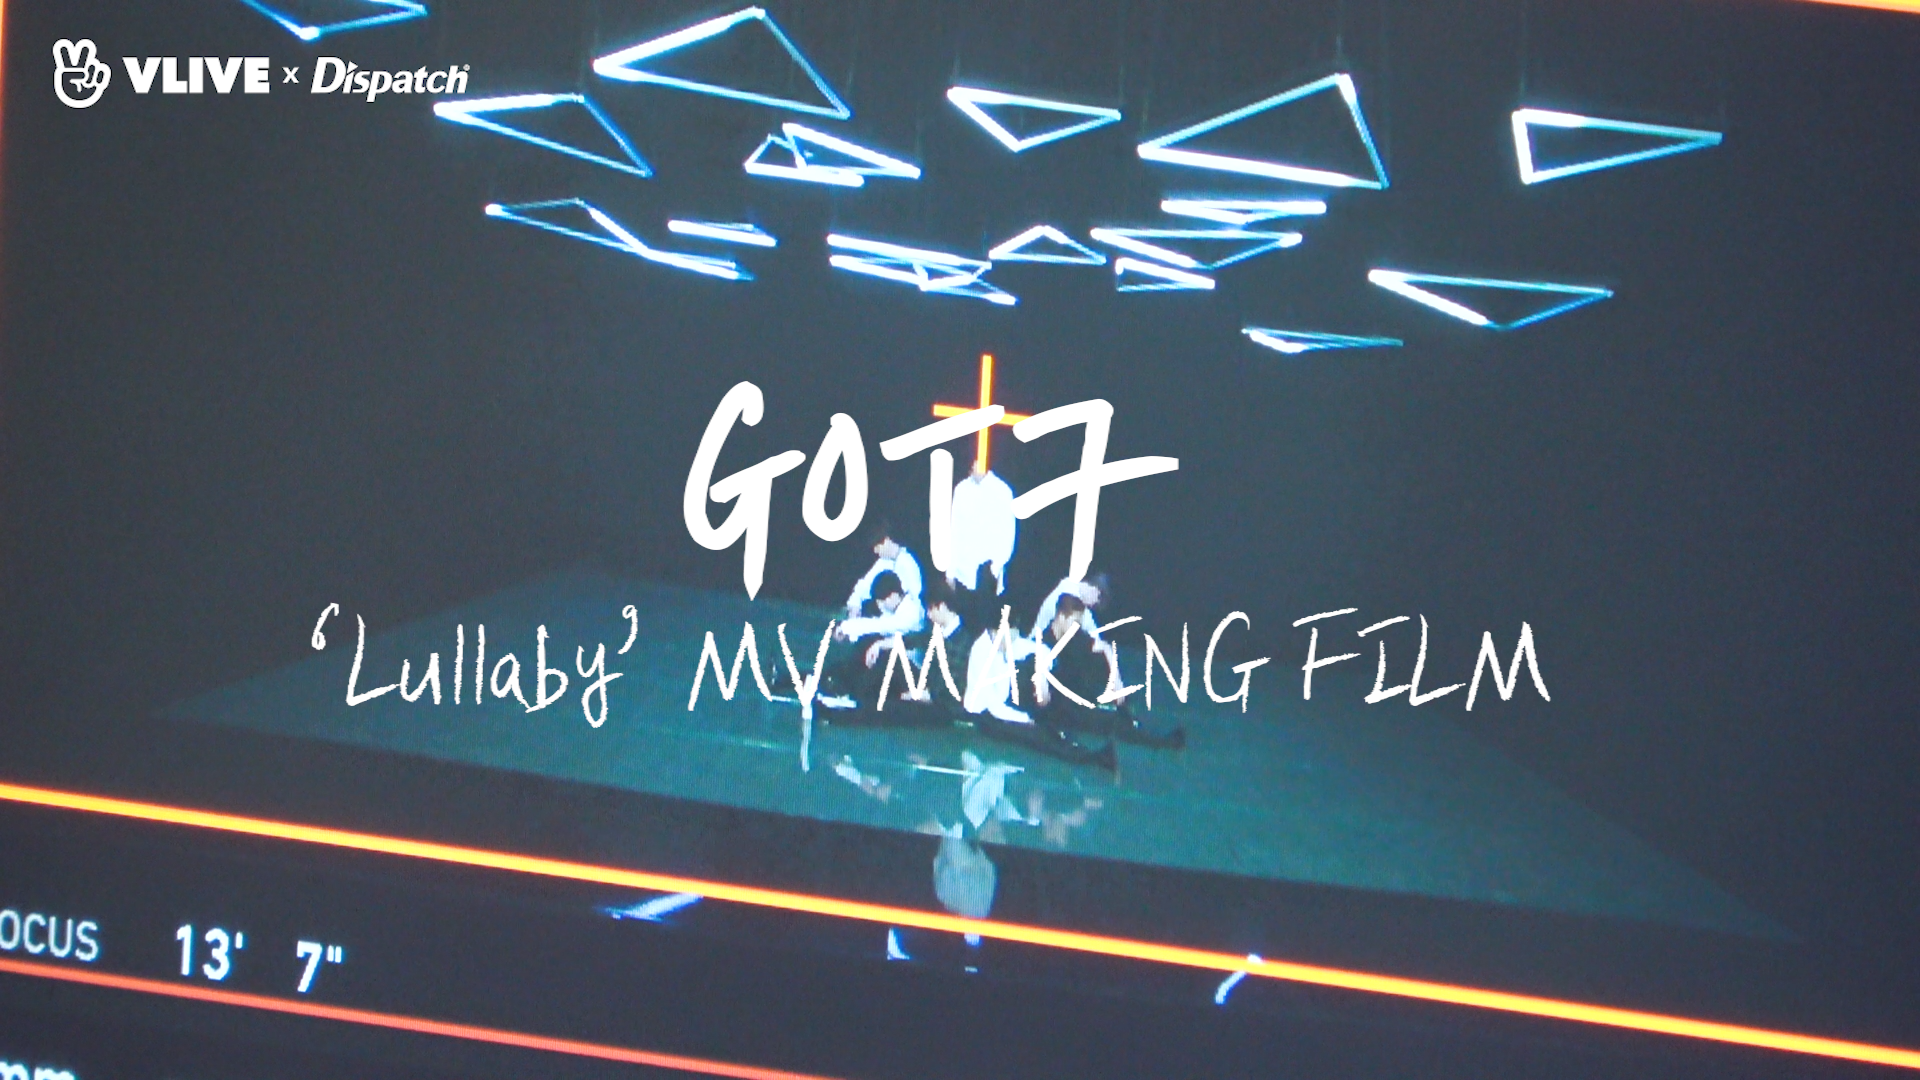 [ⓓxV] 'Lullaby' MV Making Film (갓세븐:GOT7)